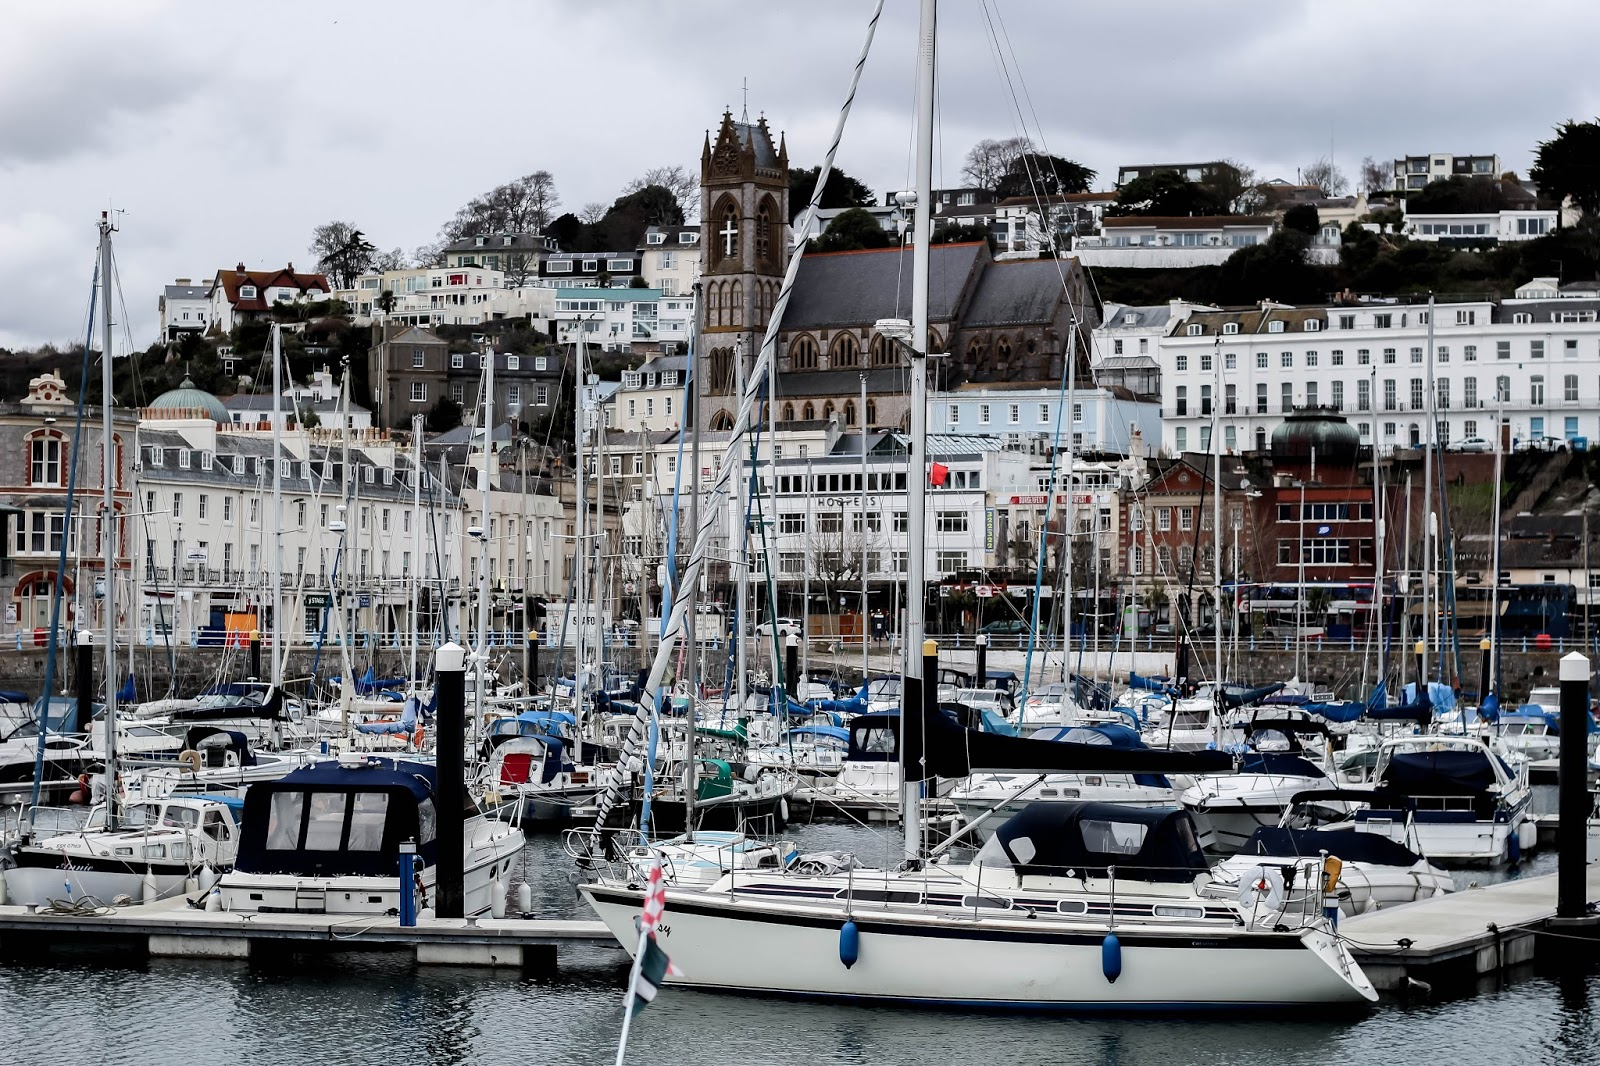 Torquay Marina Harbour in Spring 2018